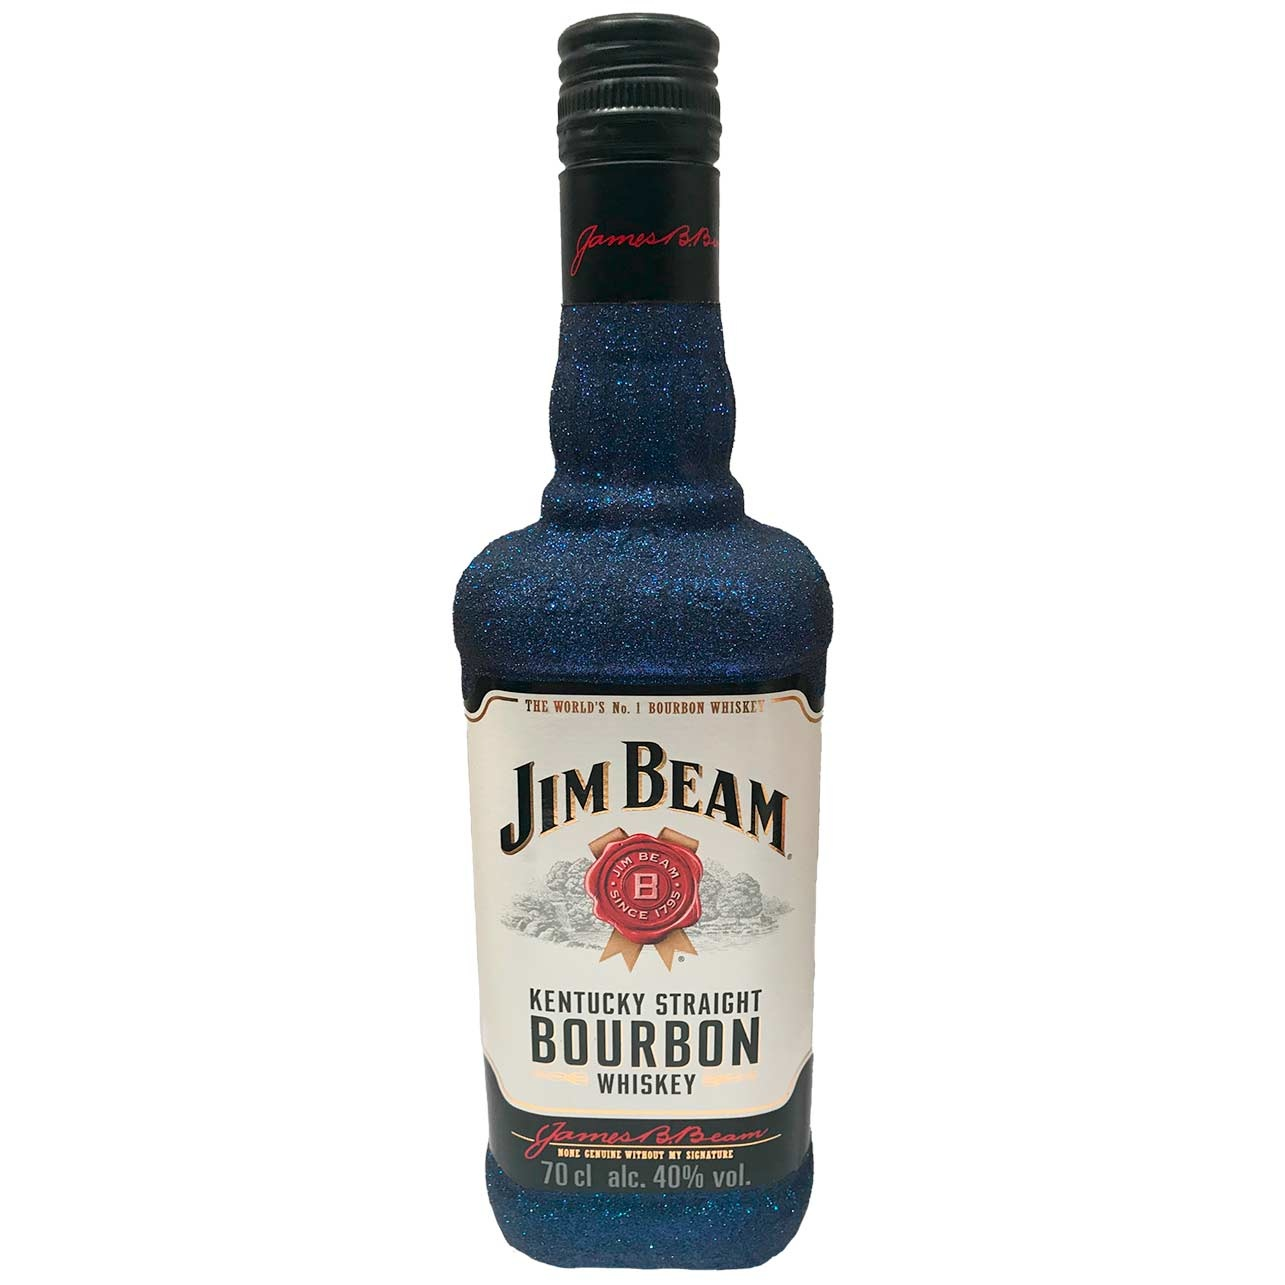 Whisky Glitzer  Jim Beam Kentucky Straight Bourbon (0,7l)